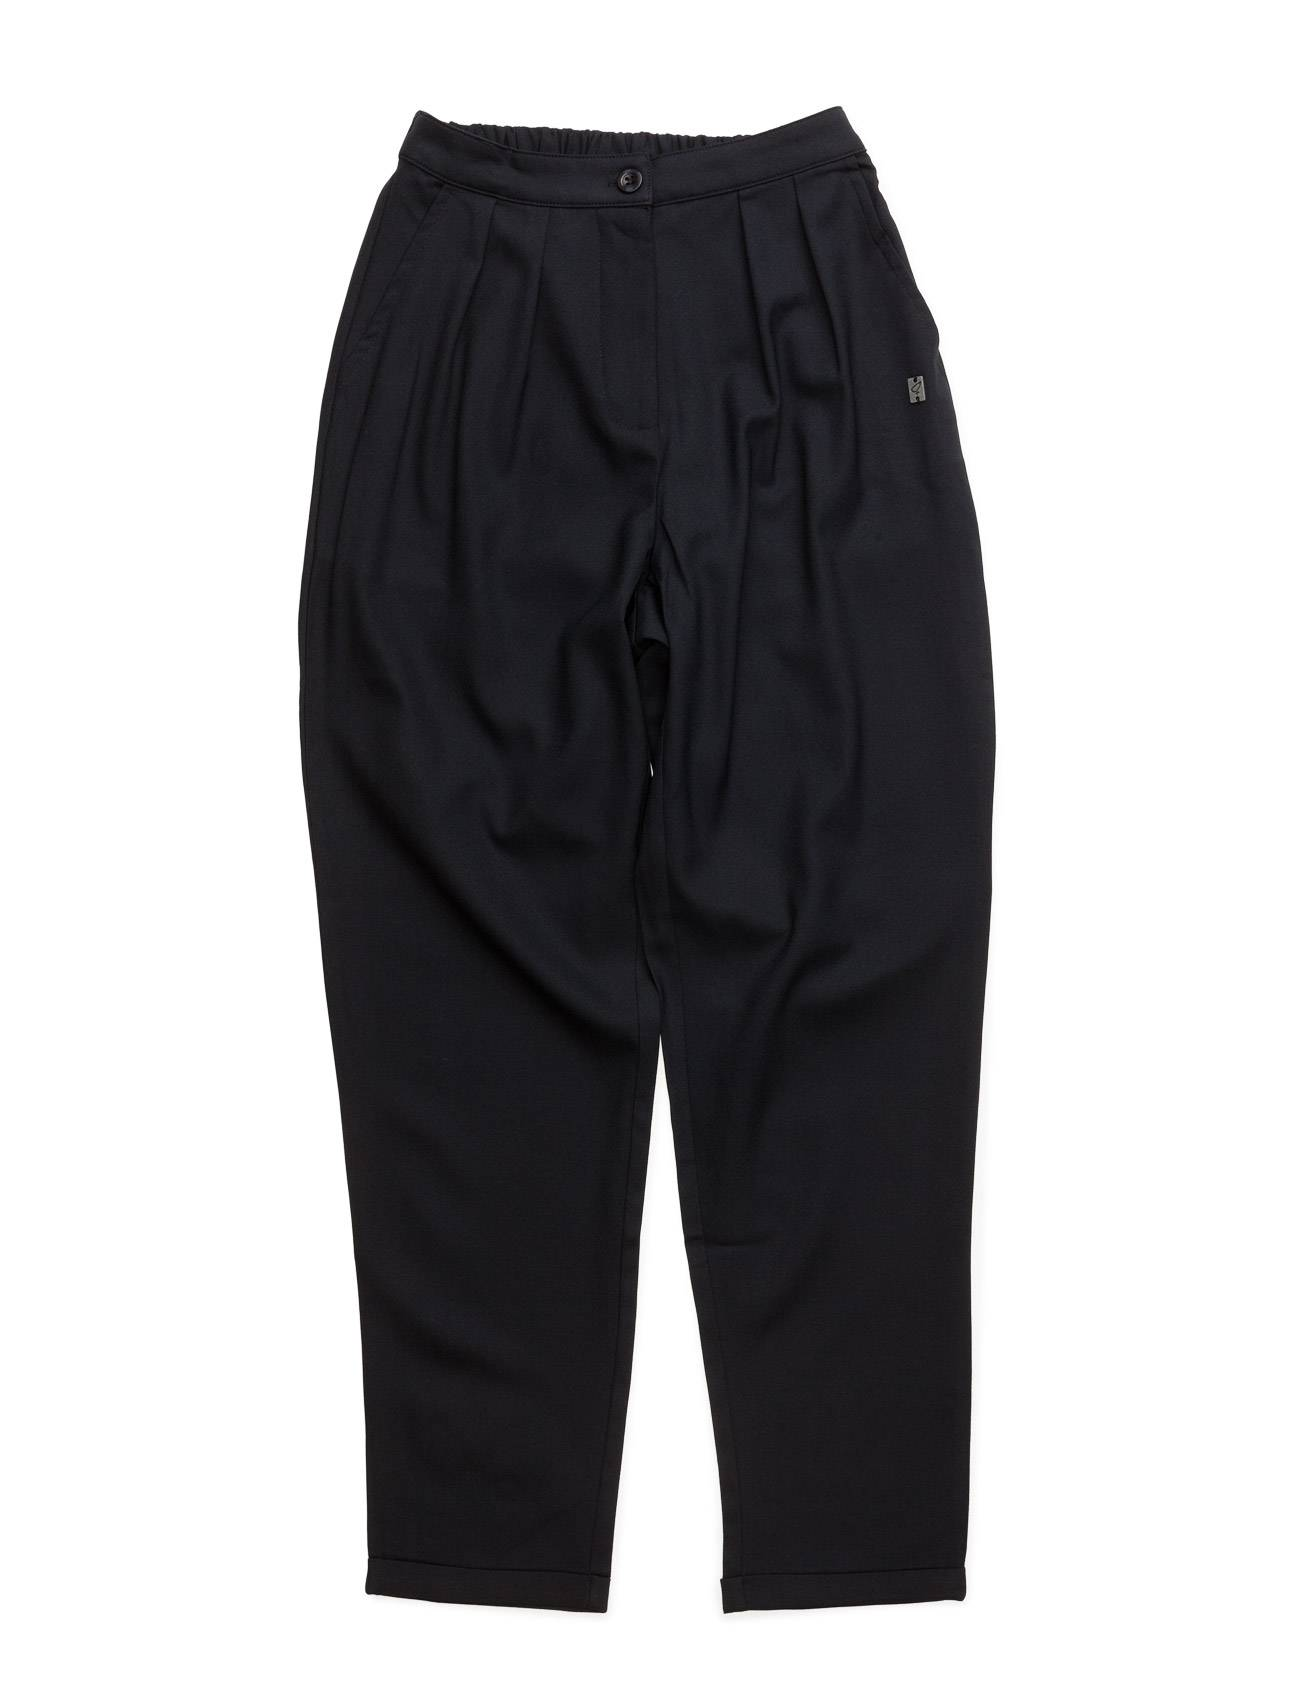 BY HOUNd Highwaist Loose Pants